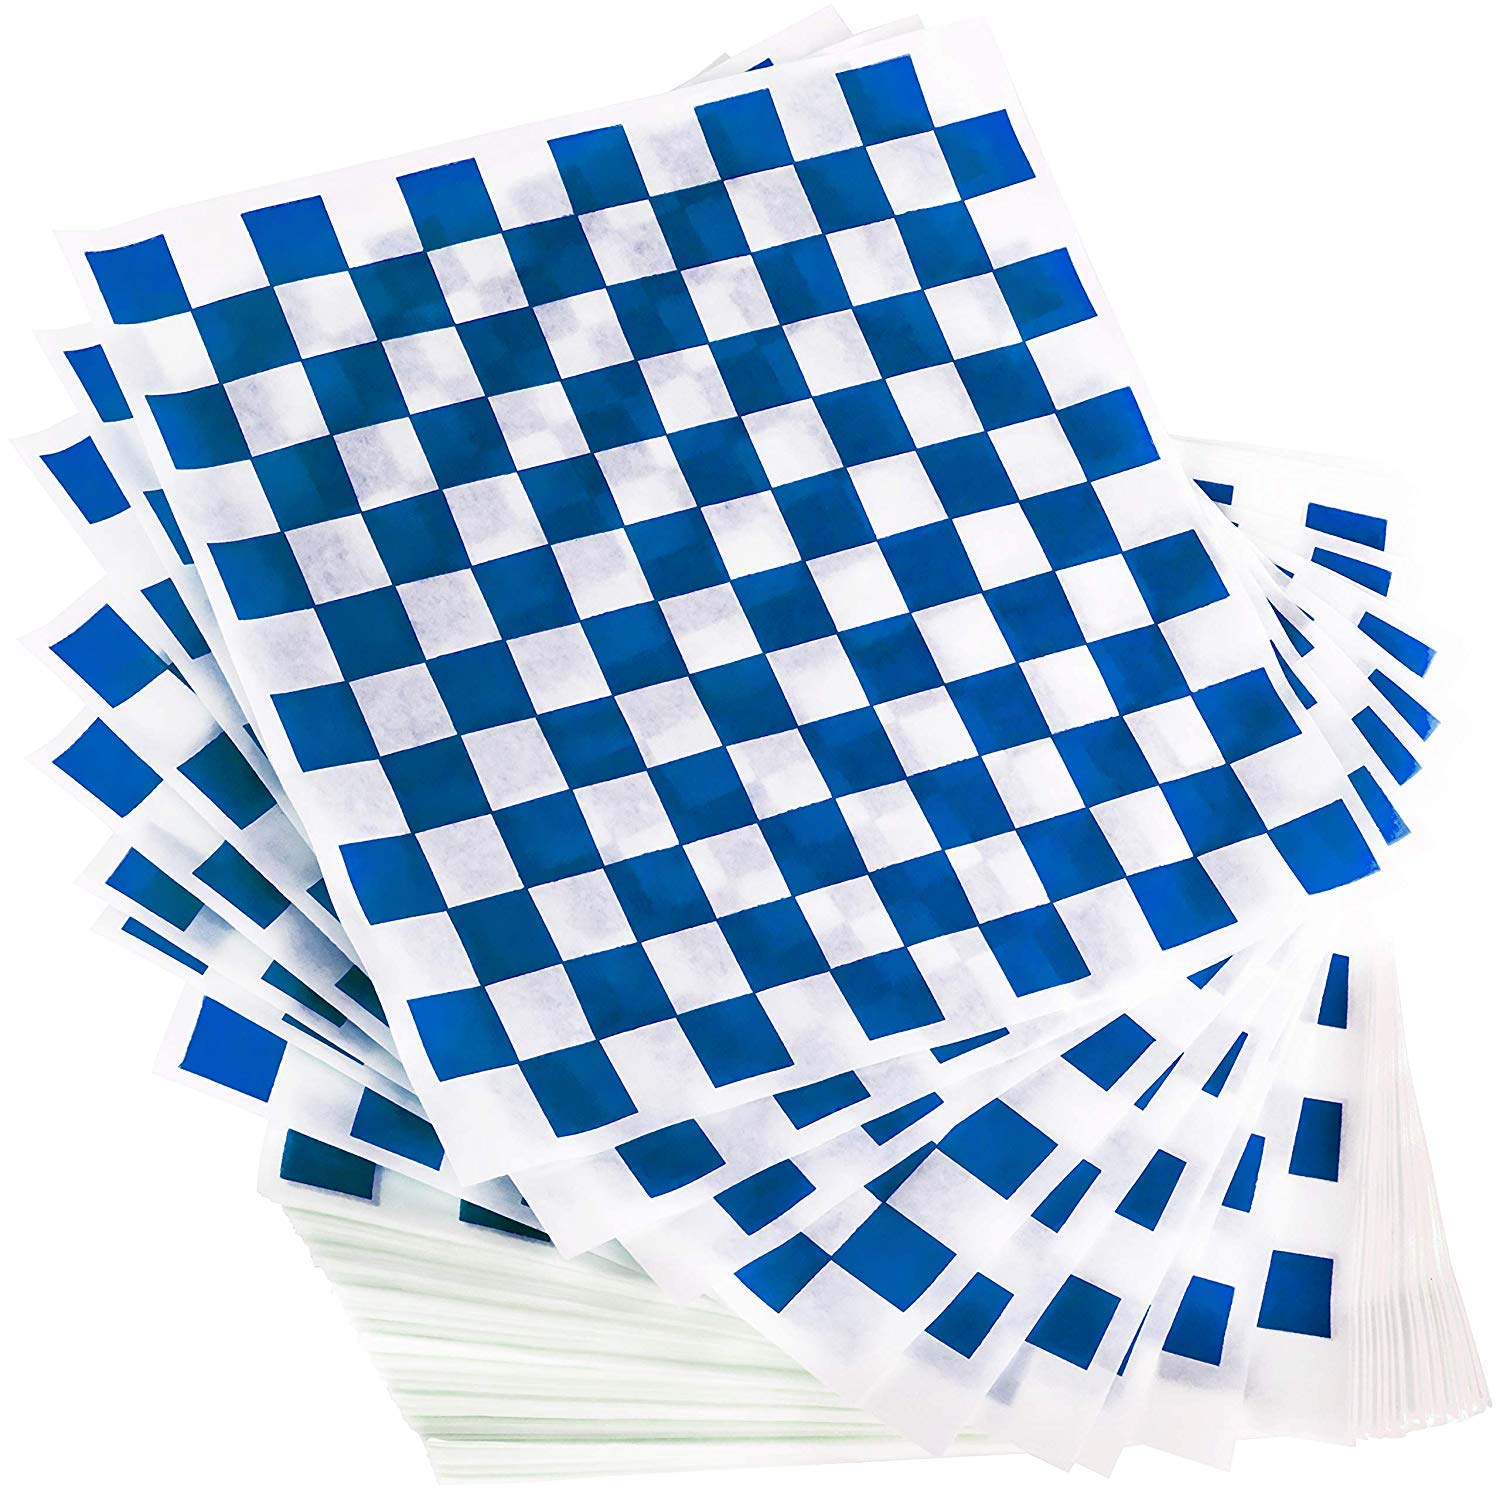 12x12 Grease Resistant Sheet, Blue Checkered, Basket Liner, Wrap, 1000 Sheets Per Box, Brown Paper Goods 7B12-BL